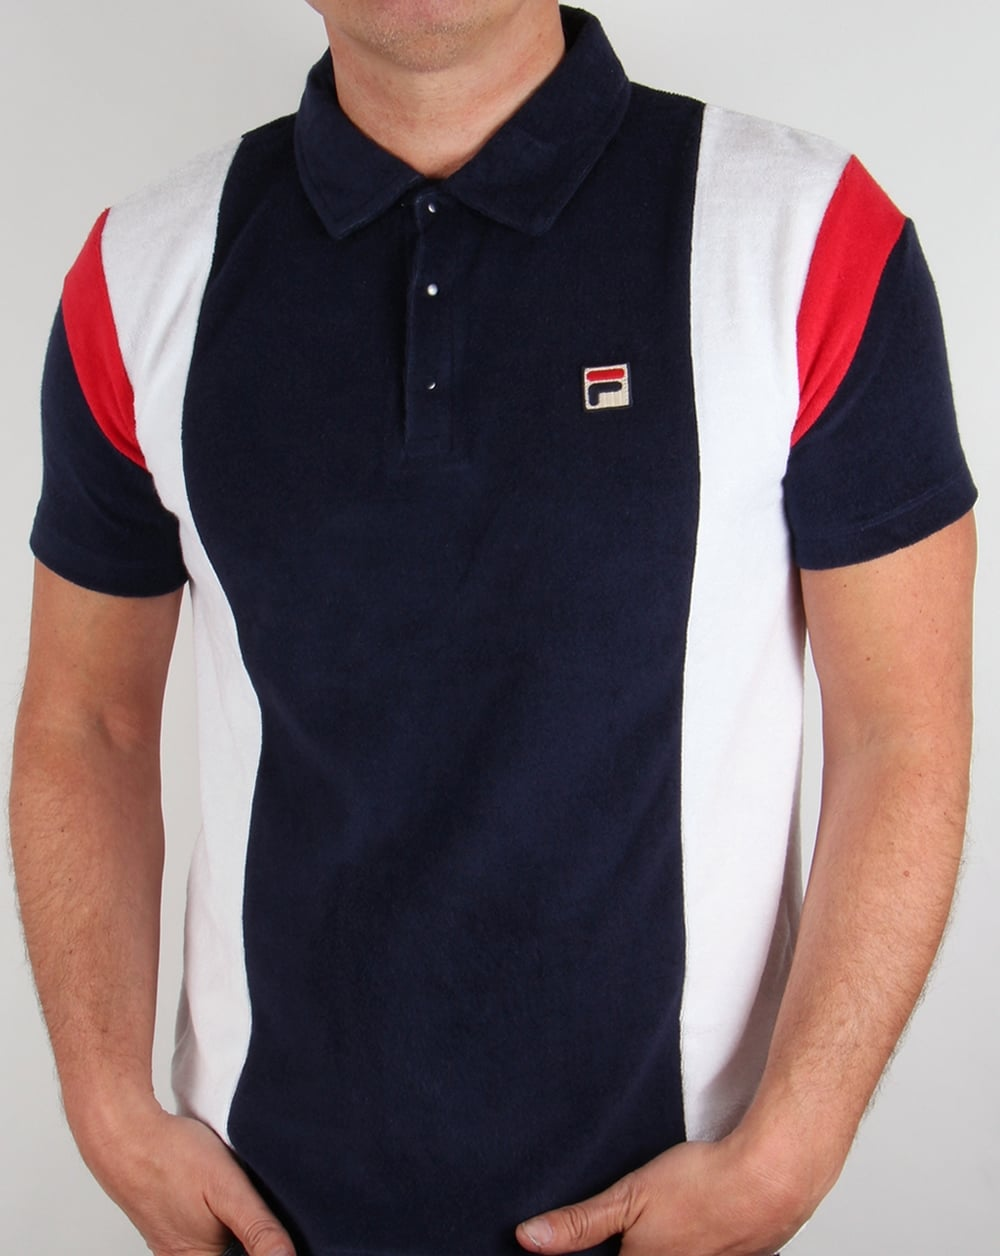 b9c1aea339ea Fila Vintage Fila Vintage Terry Polo Shirt Navy White Red